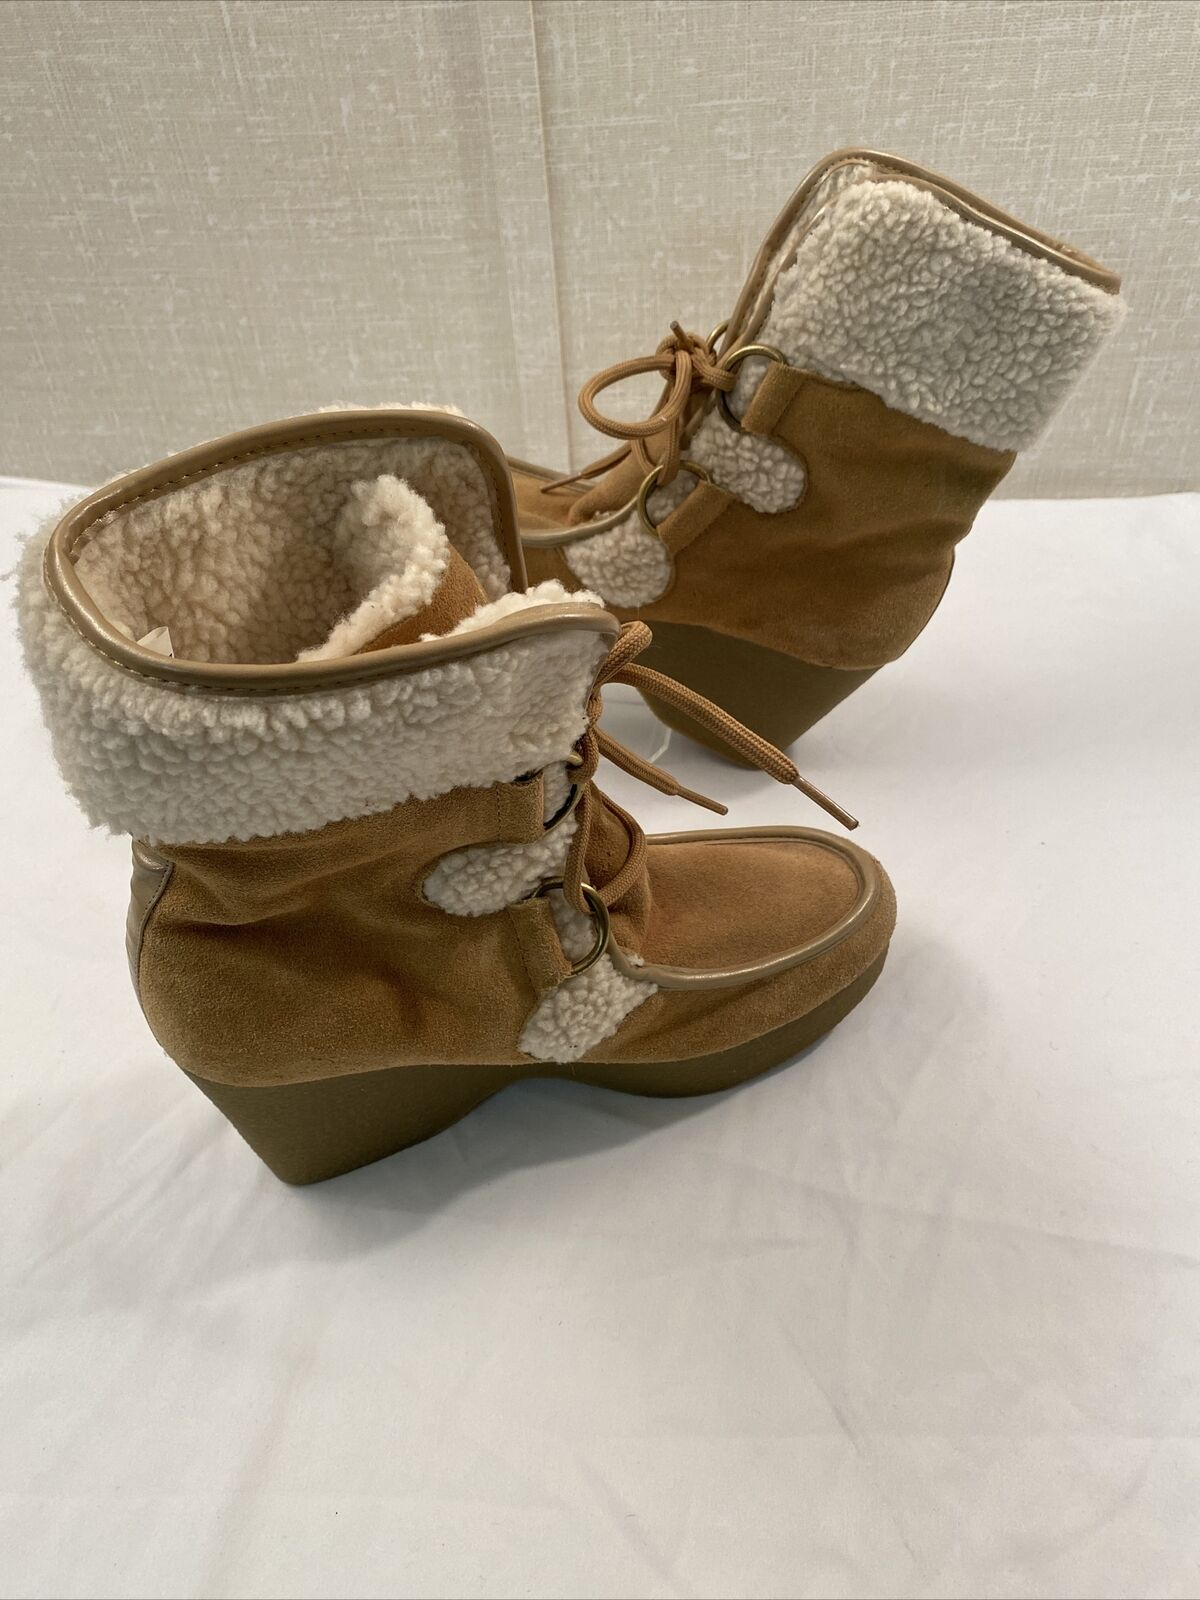 tommy hilfiger Brown boots women 8M - image 1